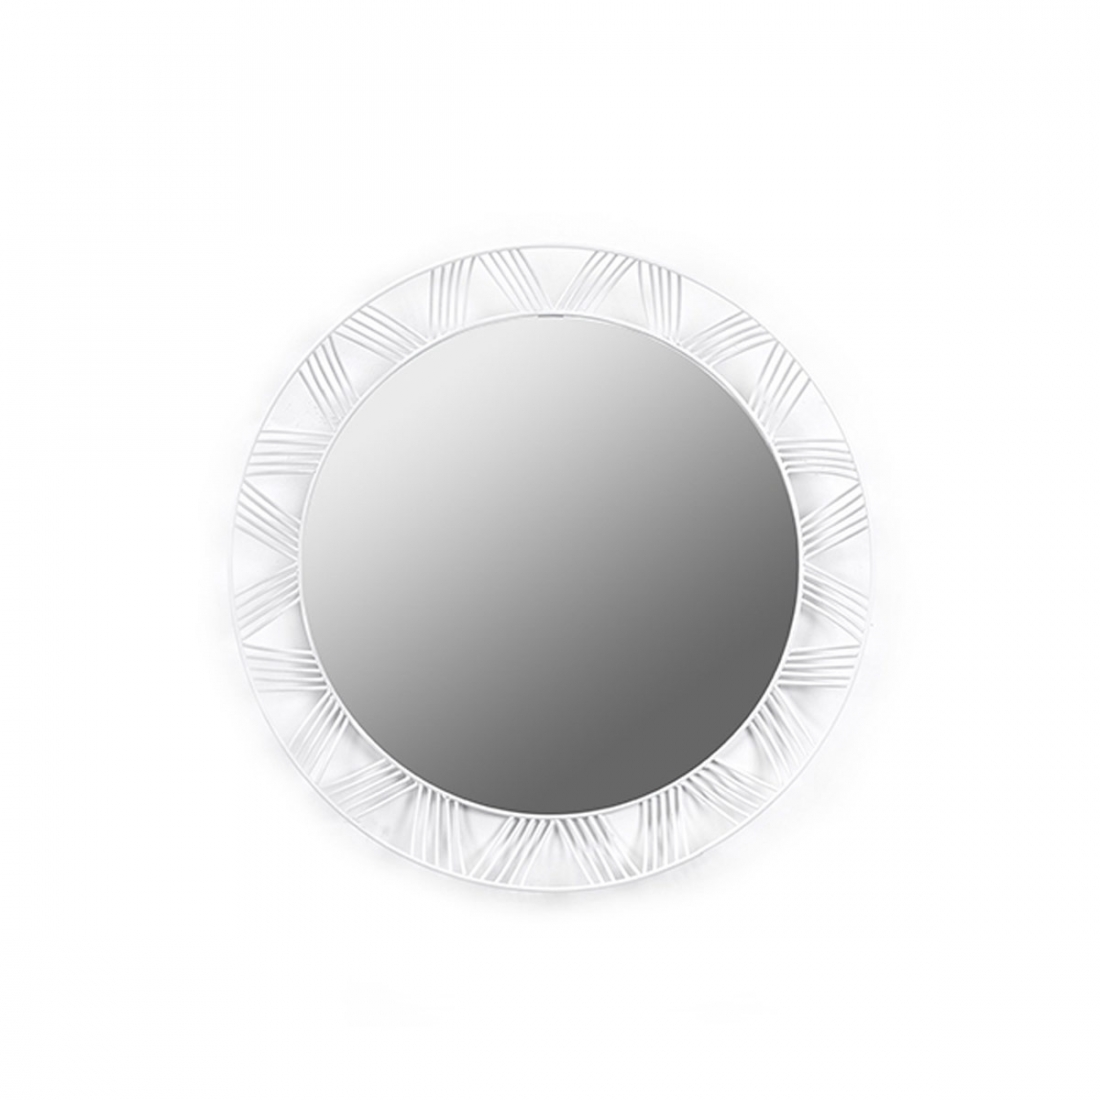 Miroir rond armature fer design serax zendart design for Miroir rond design